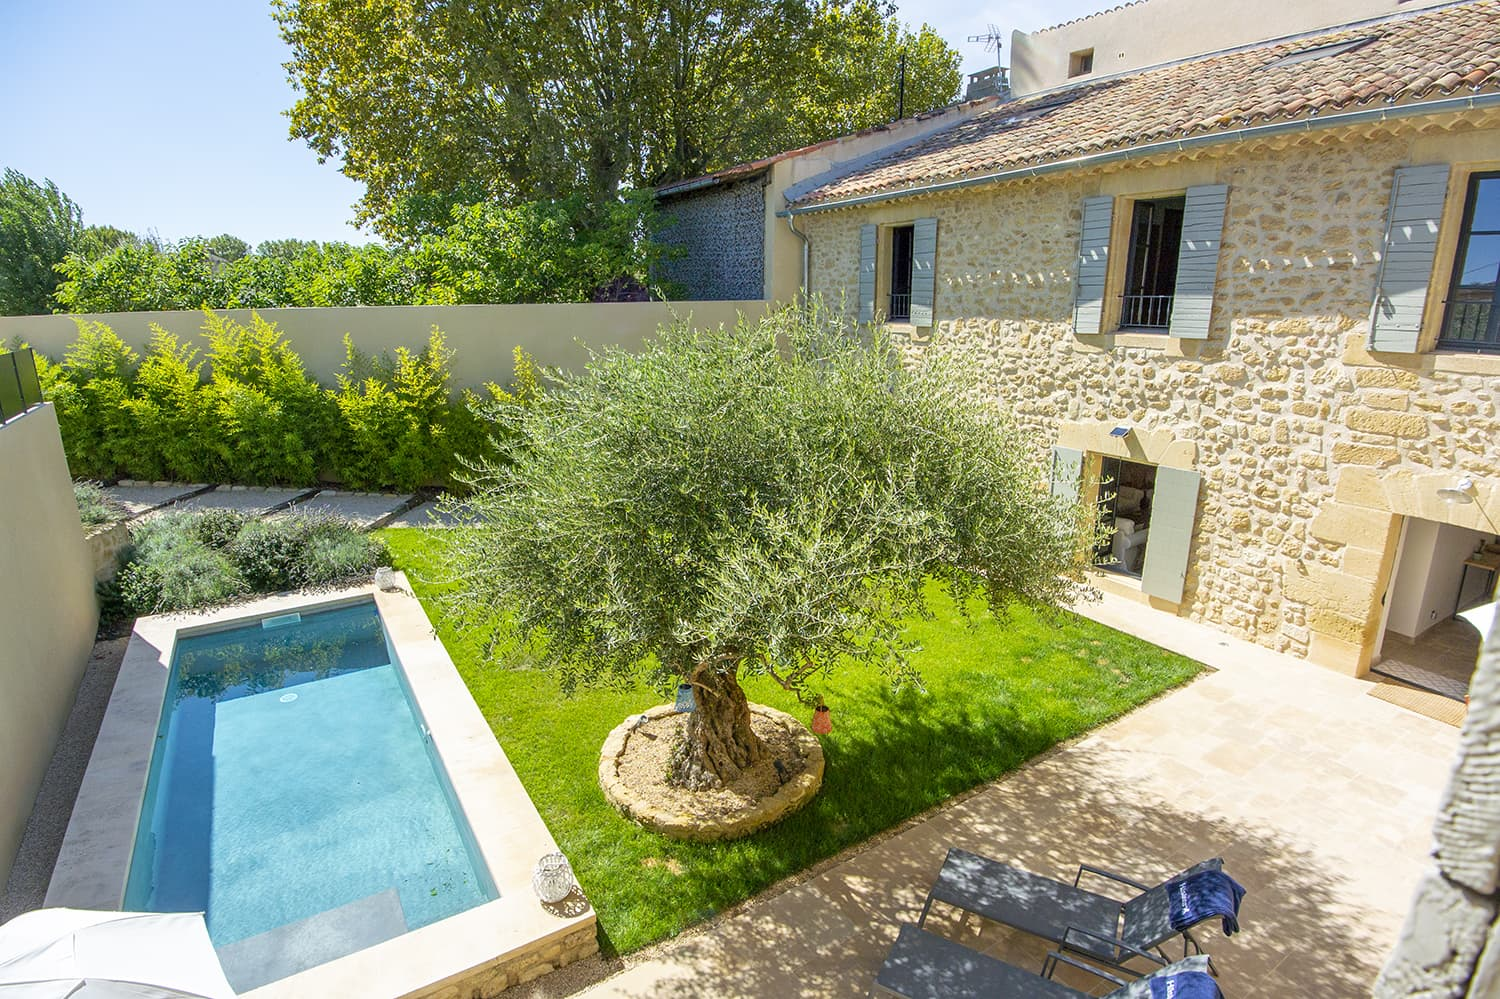 Provence-Alpes-Côte d'Azur holiday home with private pool